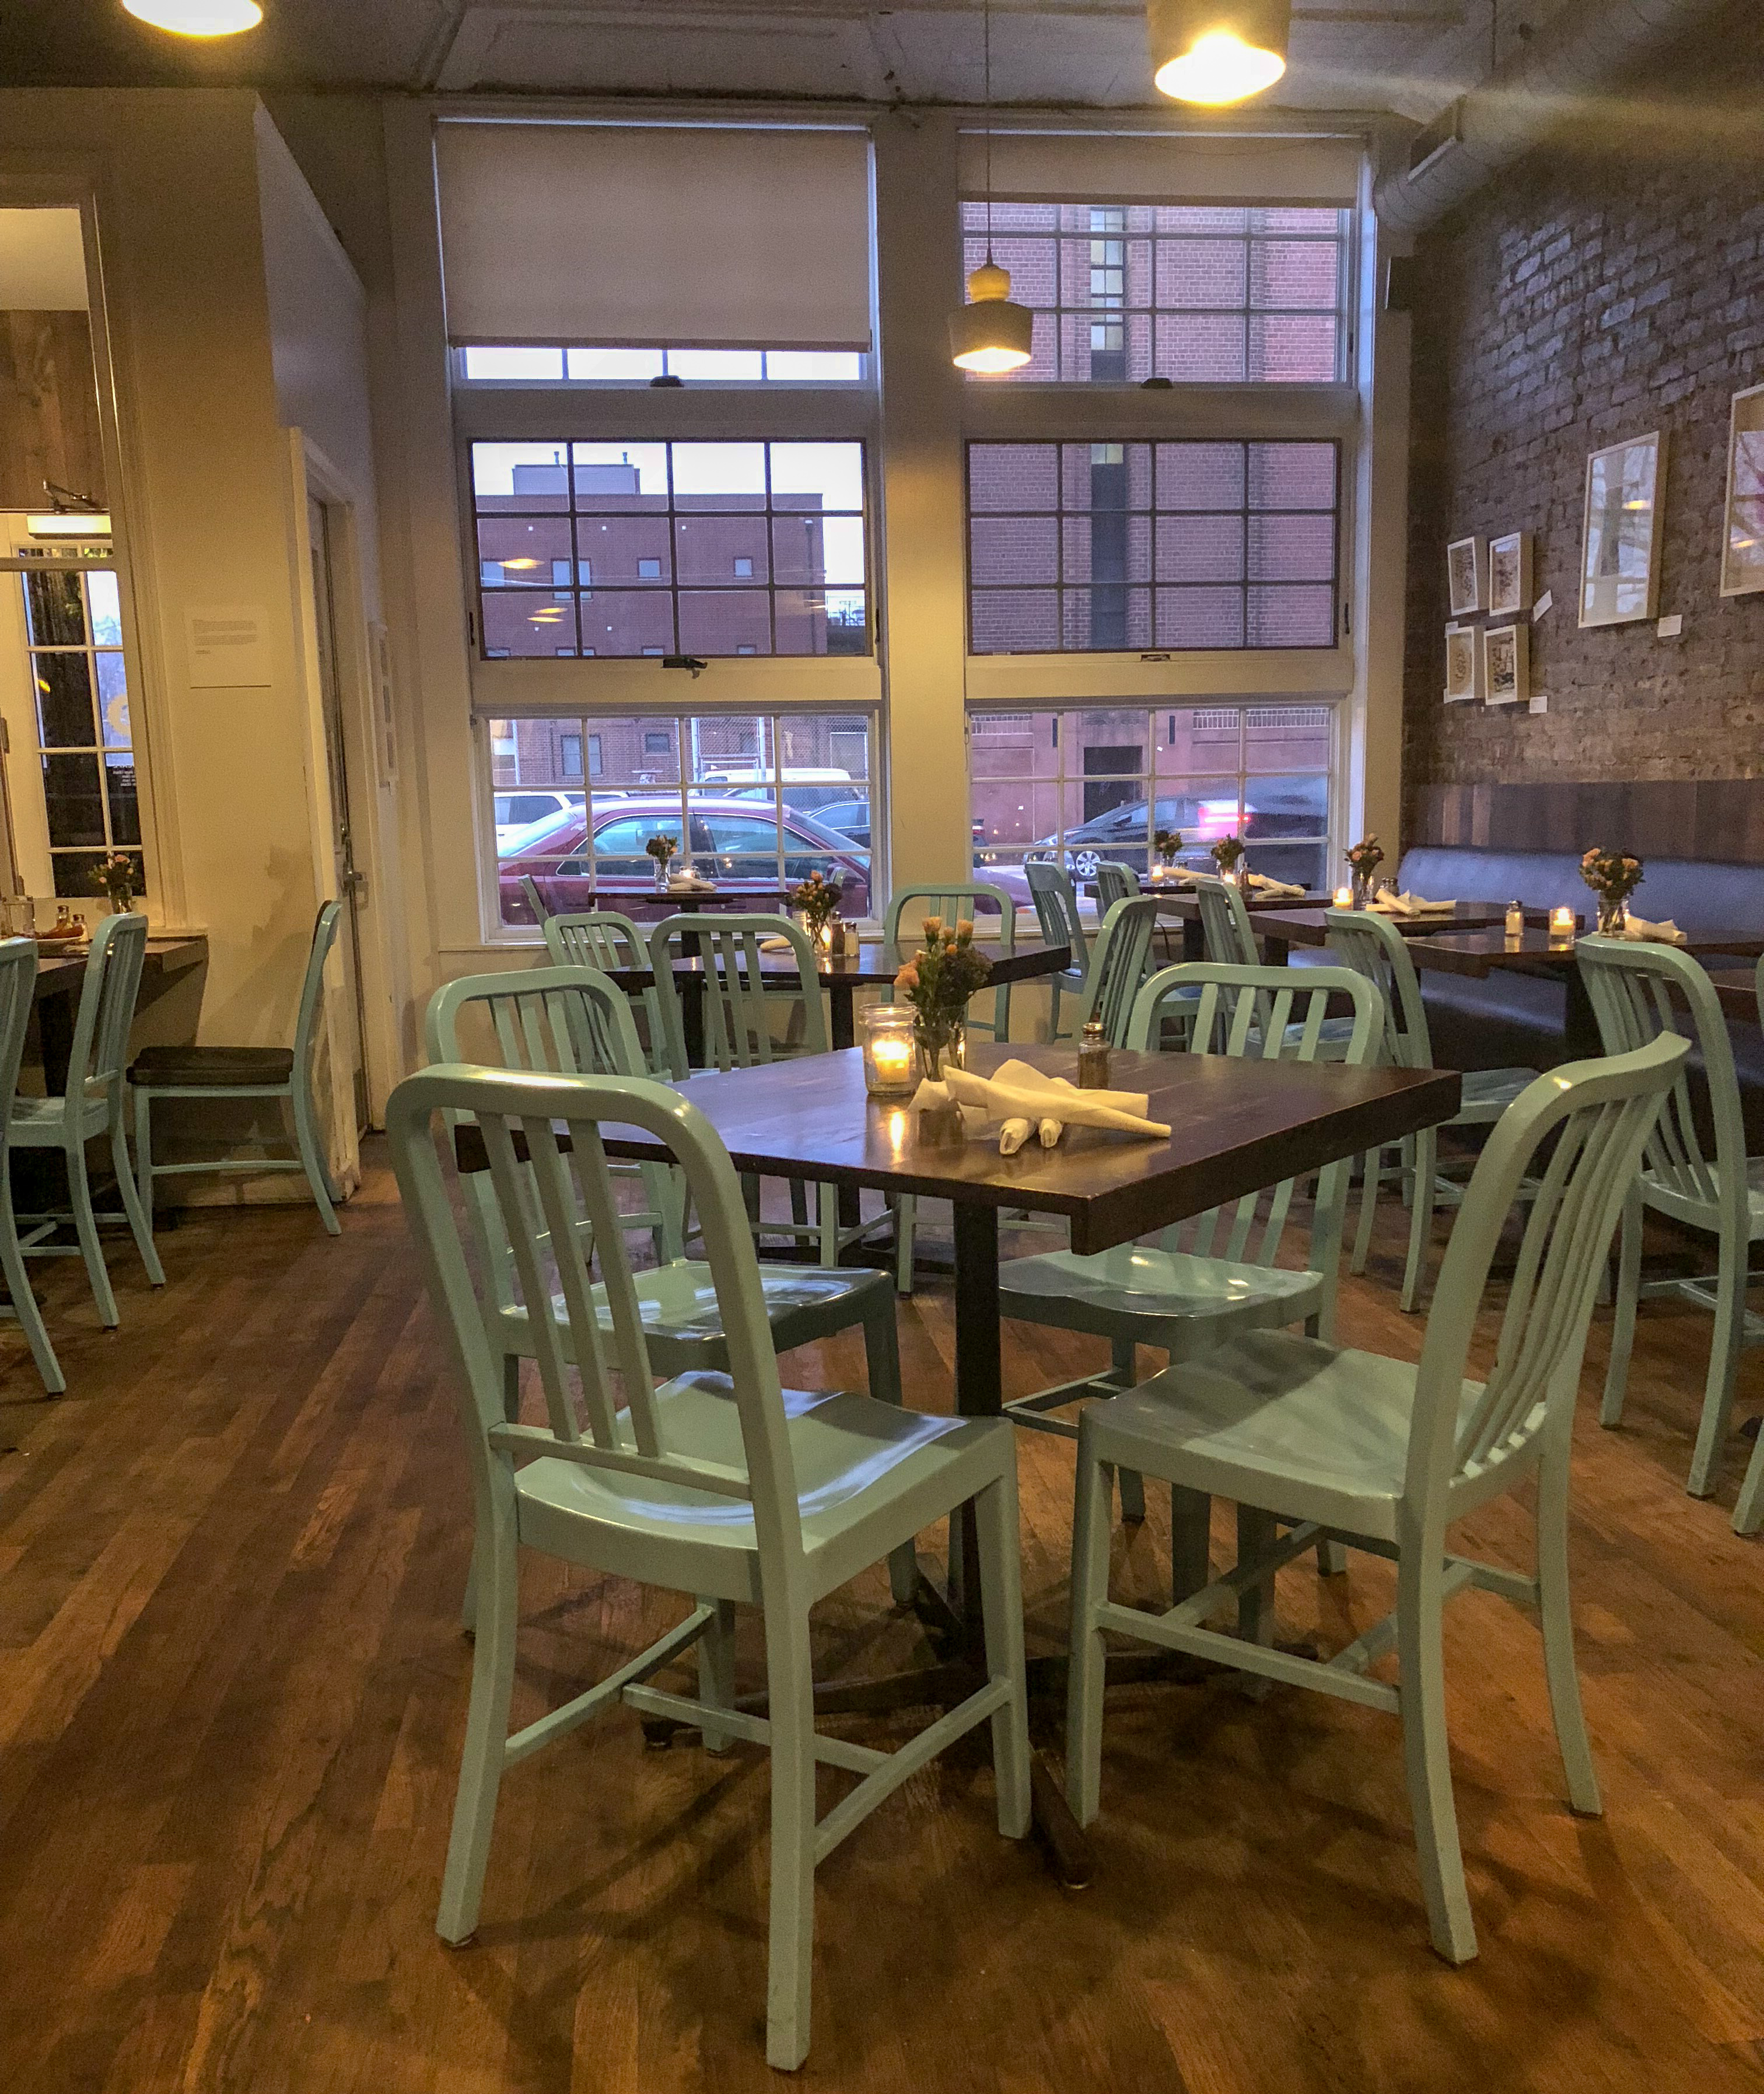 Take A Bite Out Of 24 Modern Dining Rooms: Learn About Bite Cafe Part Of 16 On Center